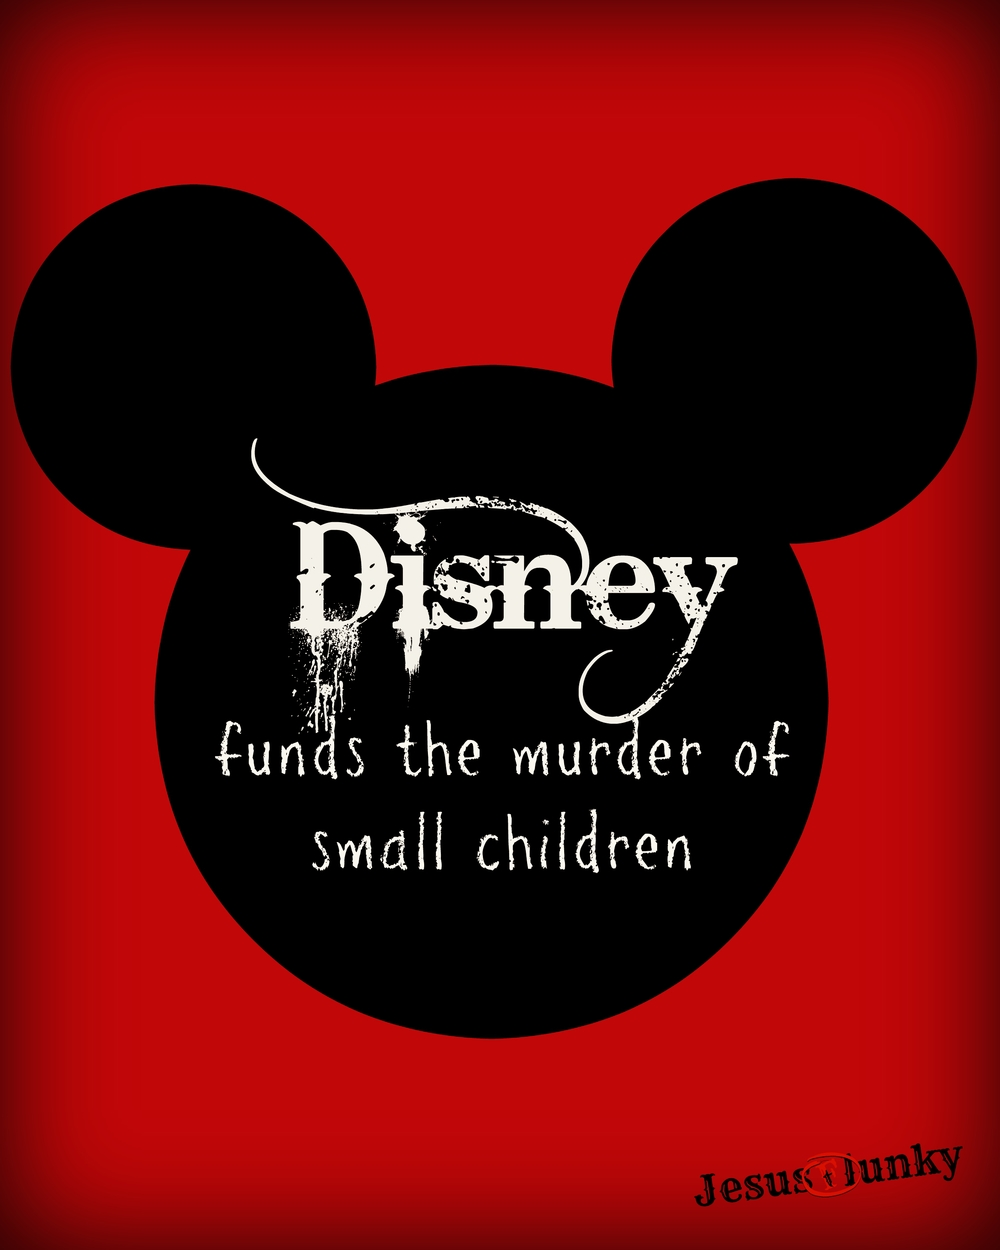 disney donates to planned parenthood